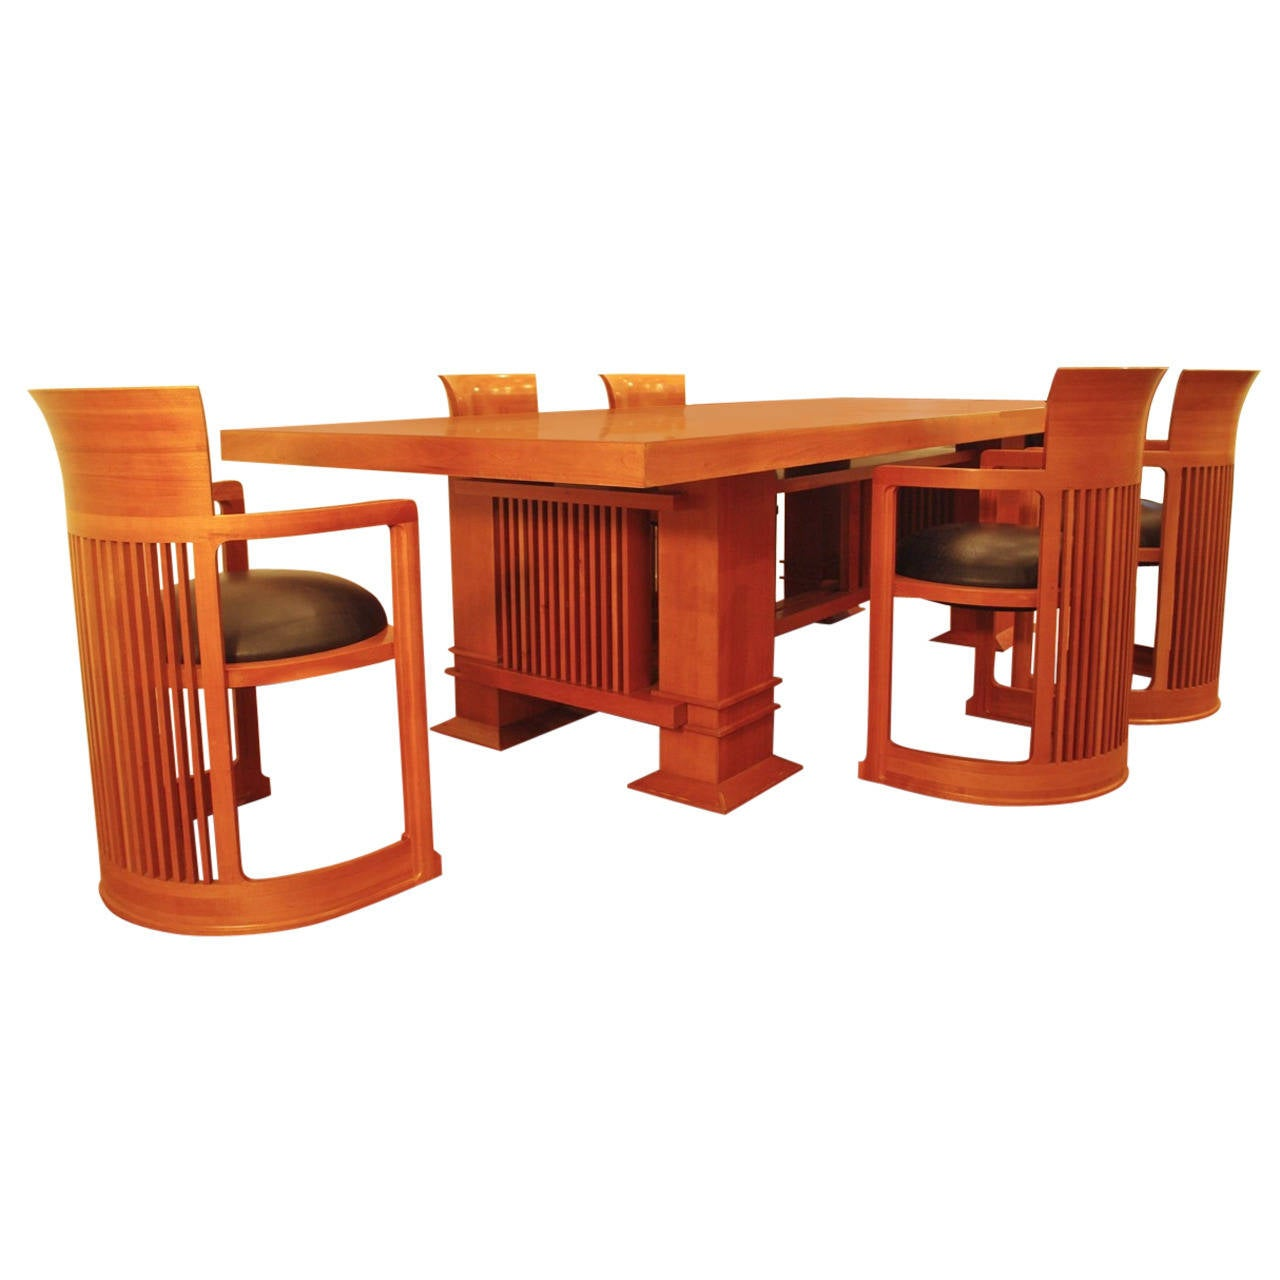 Frank Lloyd Wright Chairs Dinning Room Set By Frank Lloyd Wright Six Barrel Chairs